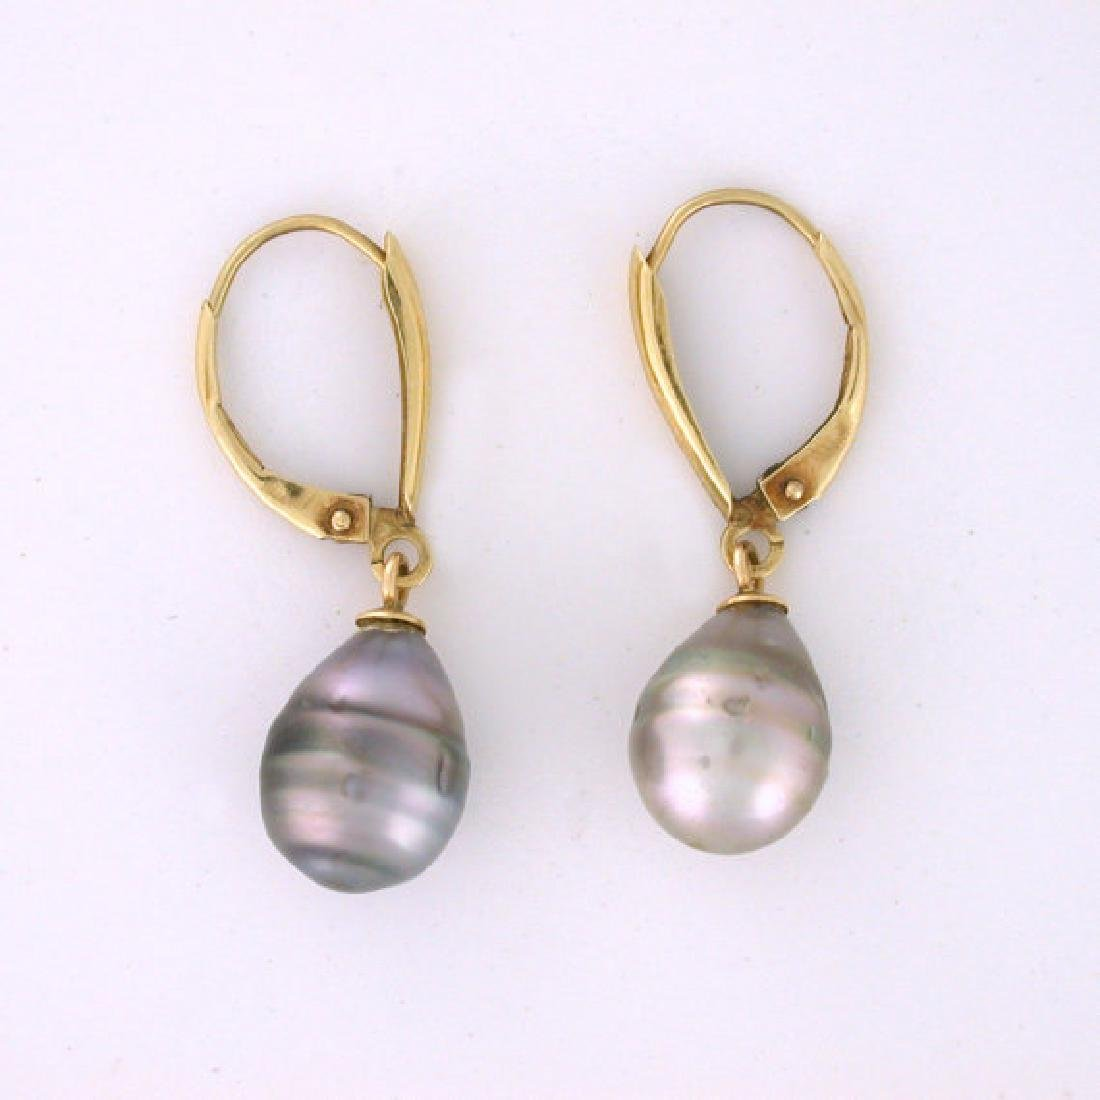 Vintage 14K Gold South Sea Black Pearls Drop Earrings